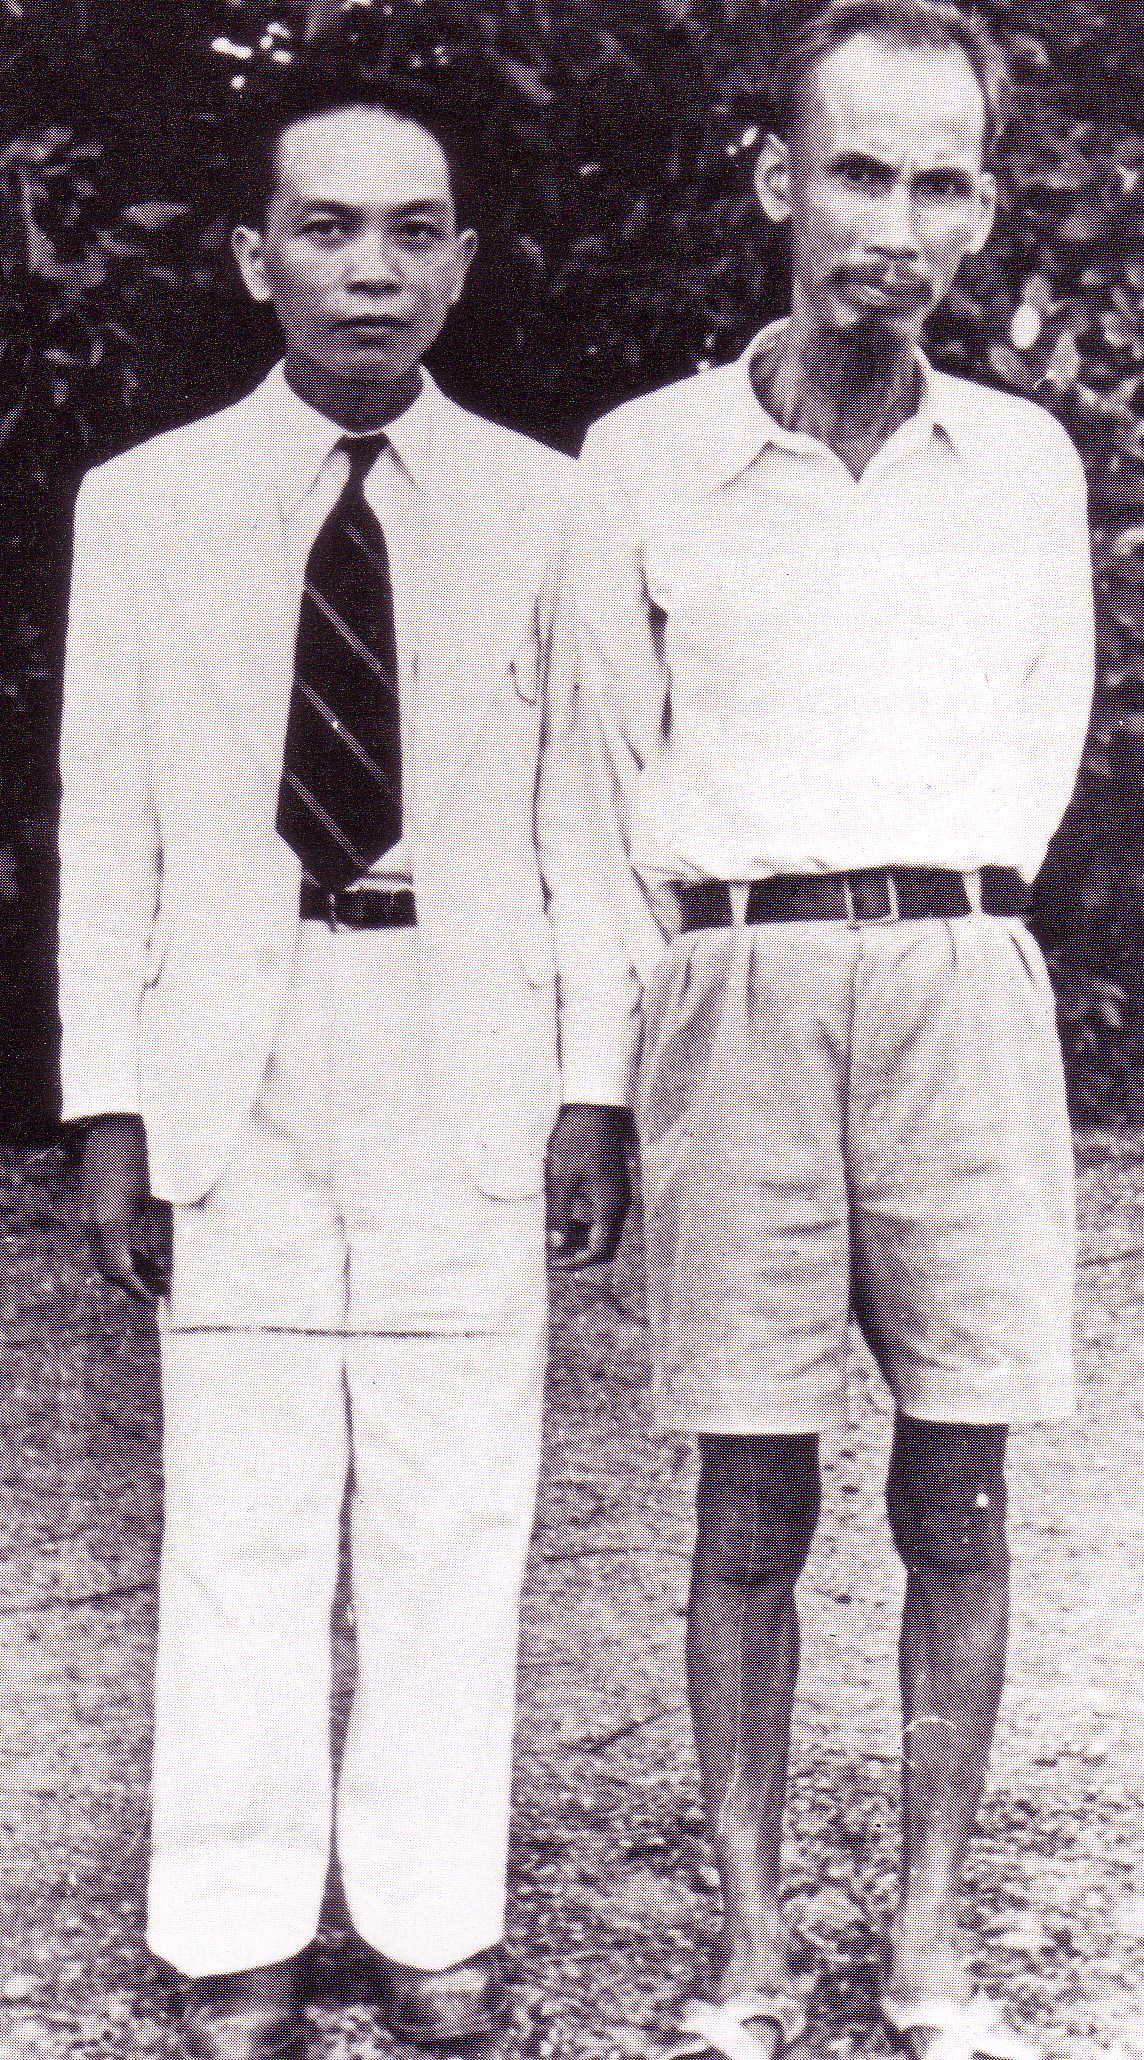 Young Giap (left) with his mentor Ho Chi Minh in 1945